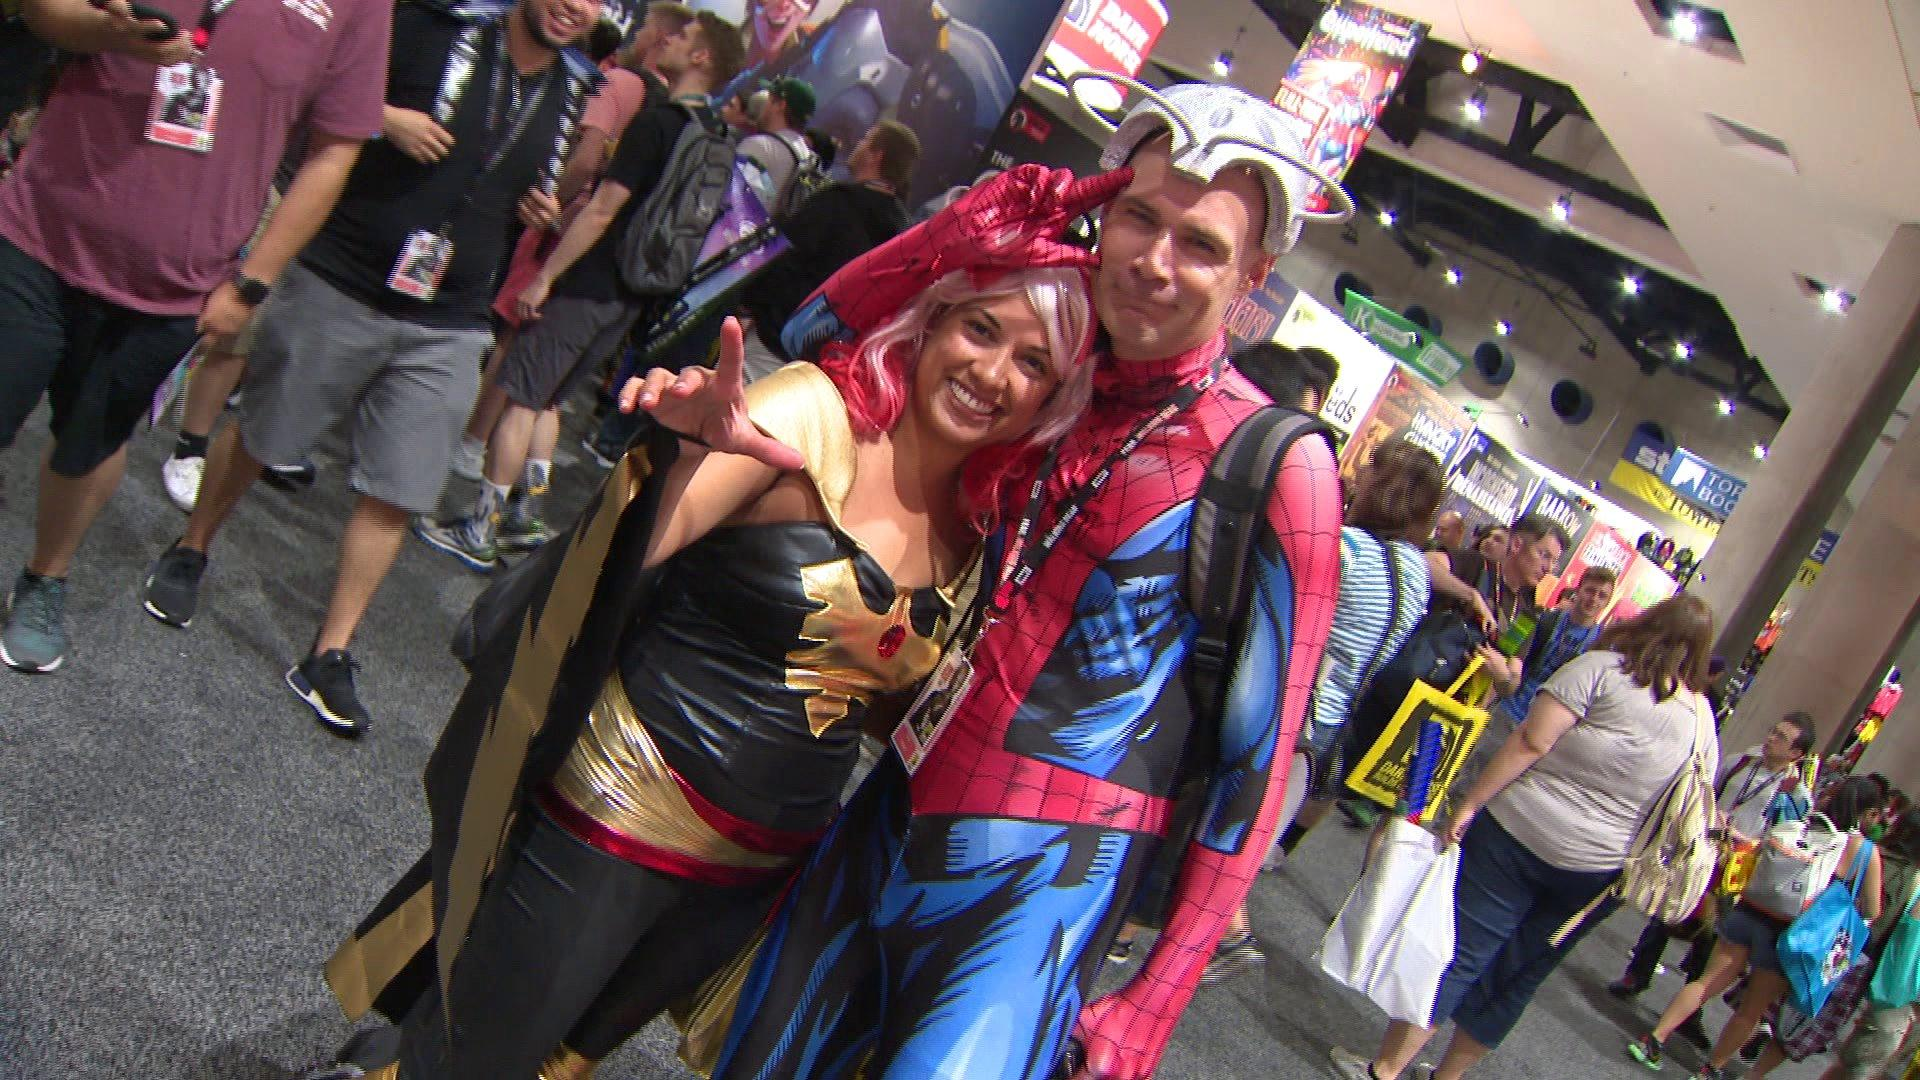 Fans Escape Reality at Comic-Con San Diego 2017